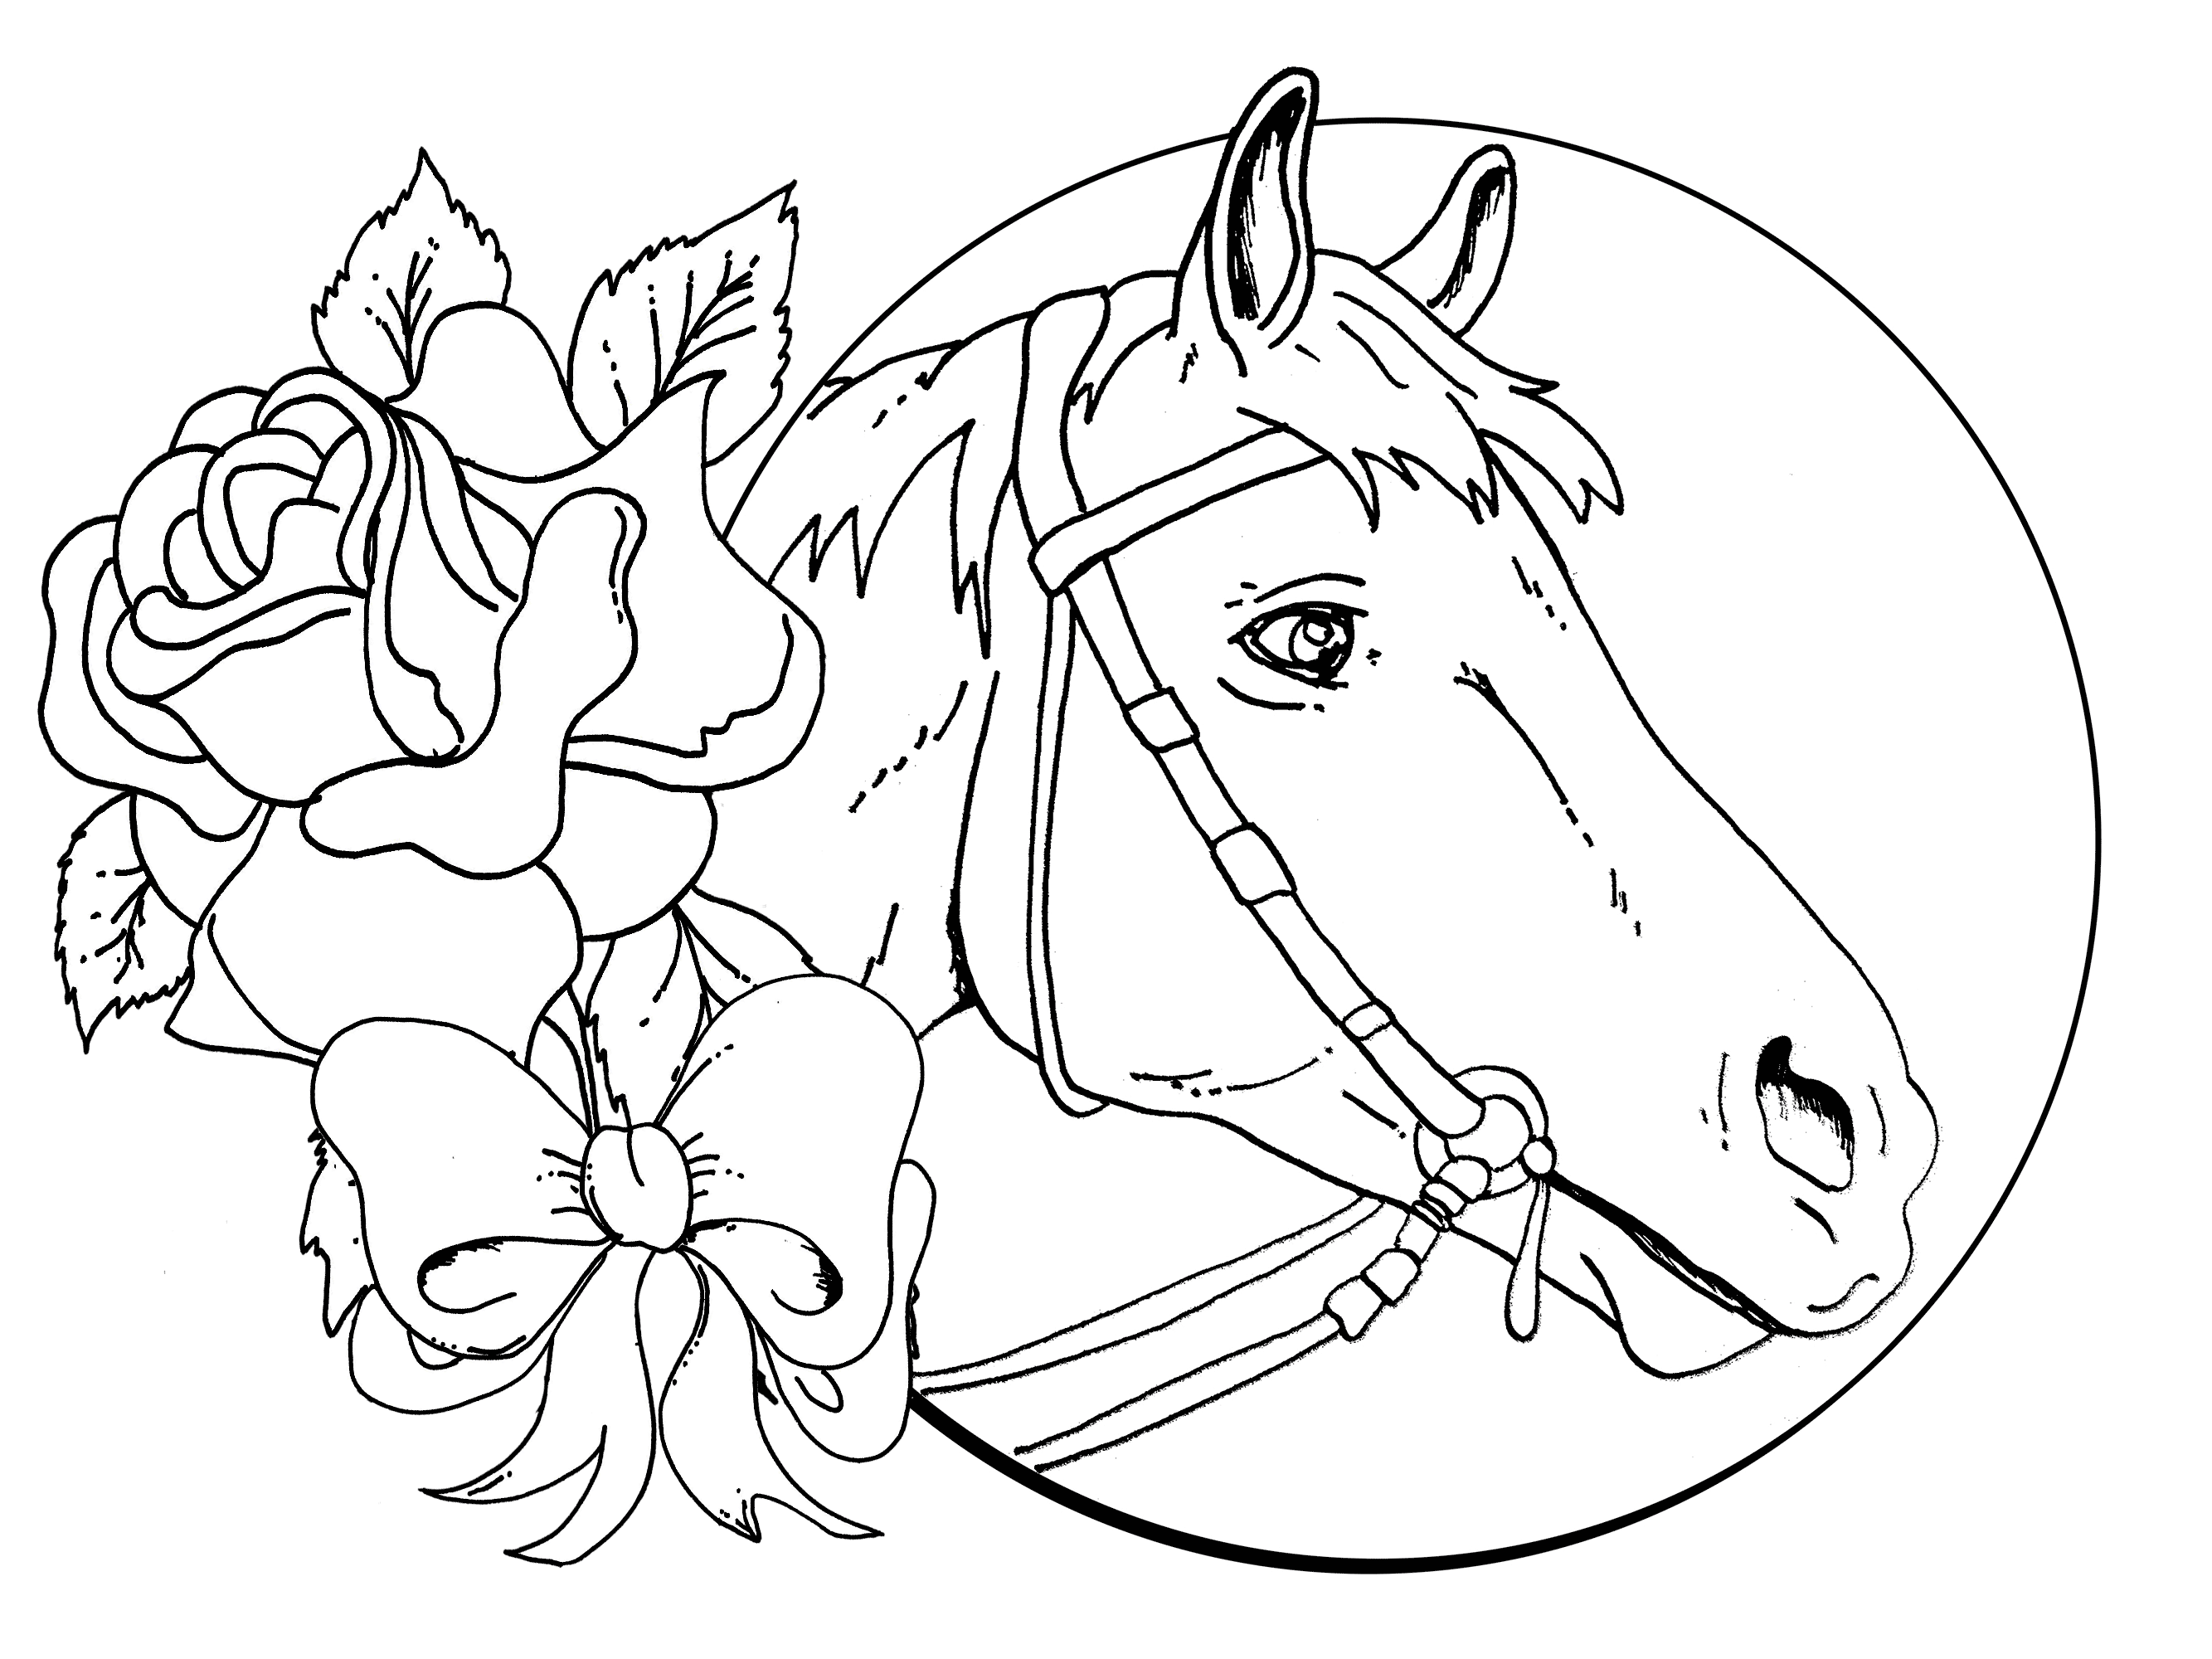 cool horse coloring pages icolor quothorsesquot with images horse coloring pages pages cool coloring horse